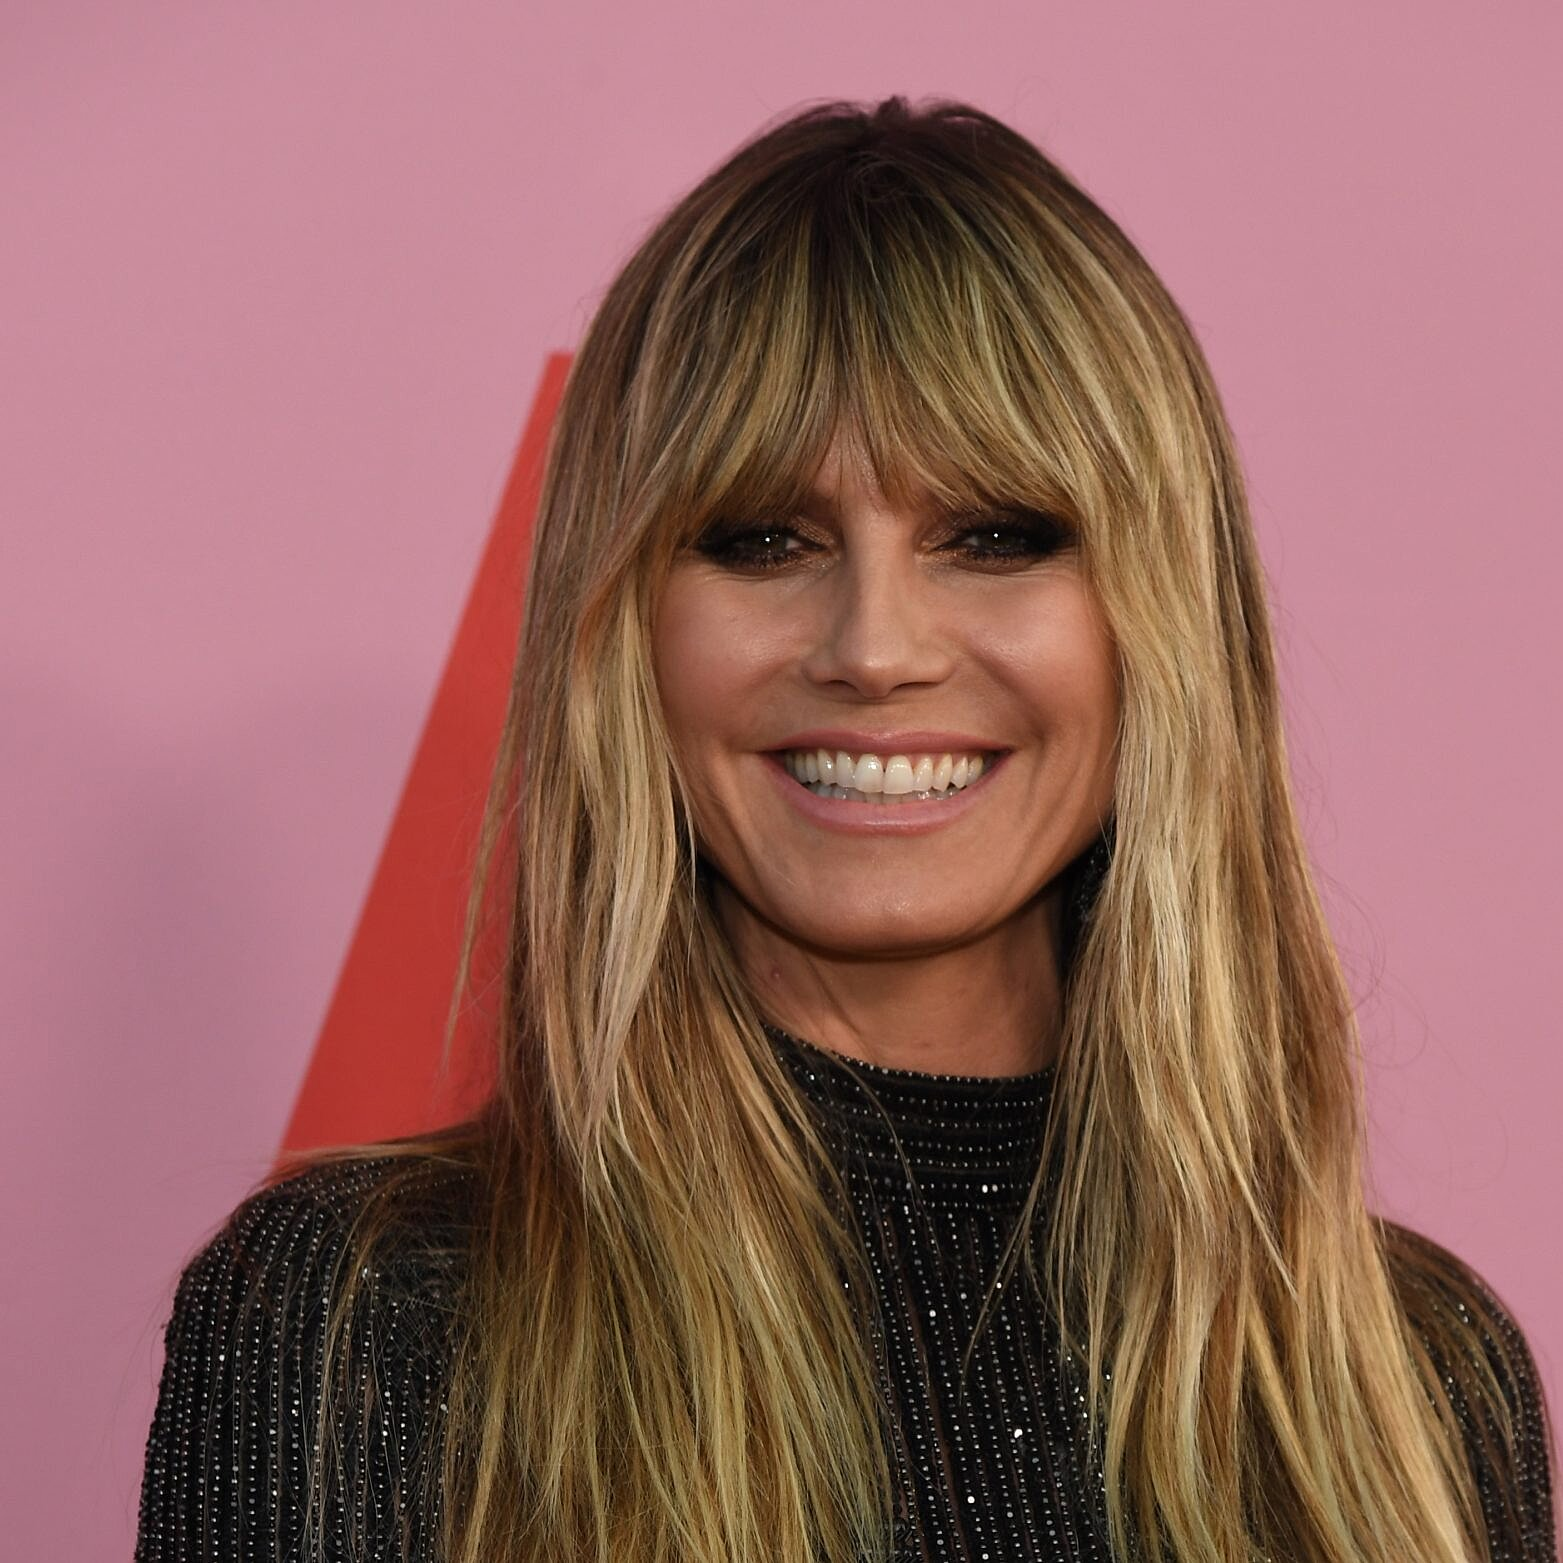 Curtain Bangs Are Hottest Celeb Hair Trend Hellogiggles